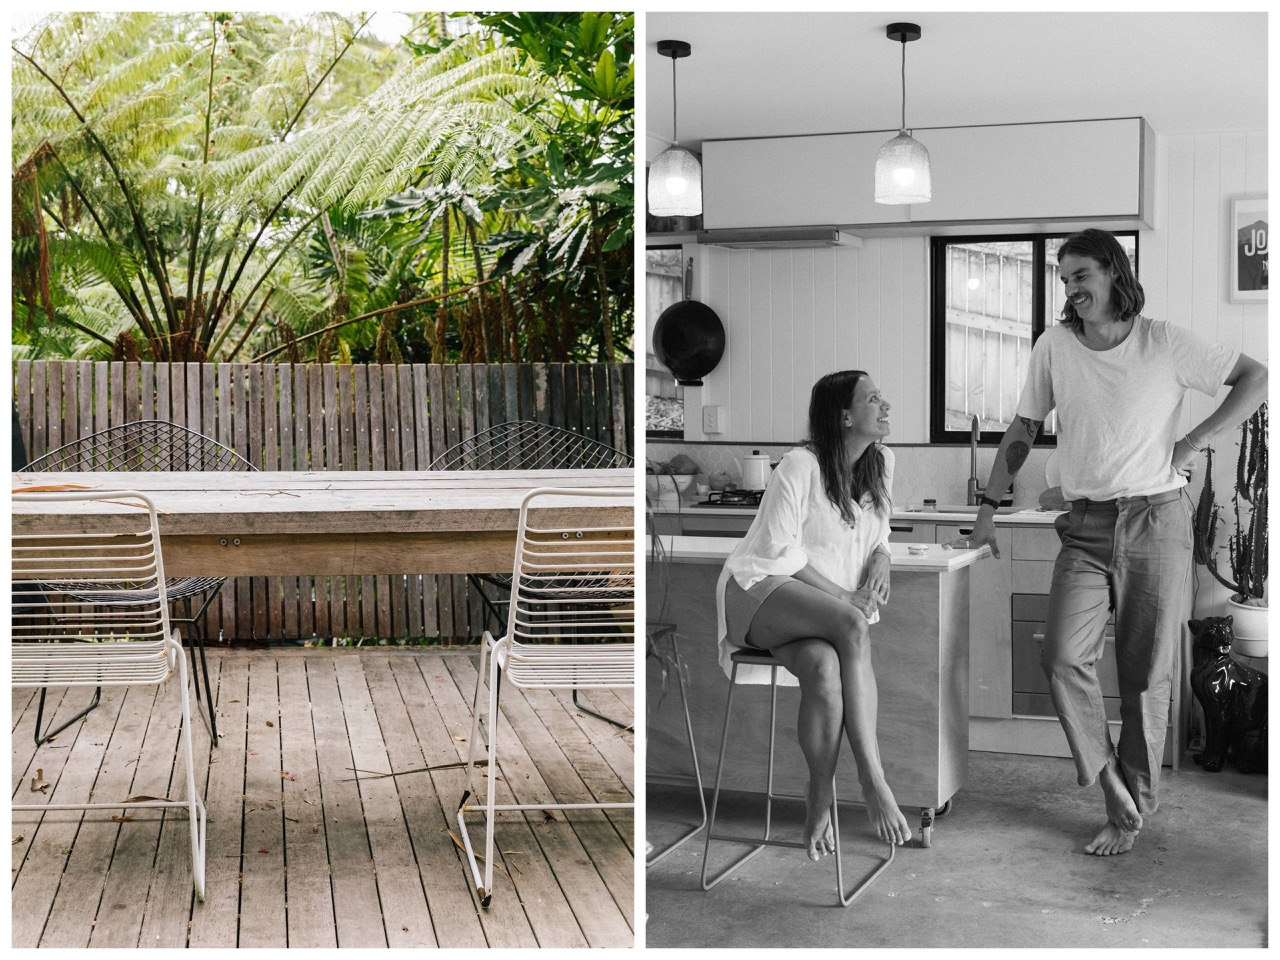 beach shack,surf shack,cabanon,maison,bungalow,bangalow,australie,byron bay,holly McCauley,décoration,family home,vintage,rotin,rattan,meubles en rotin,surf boards